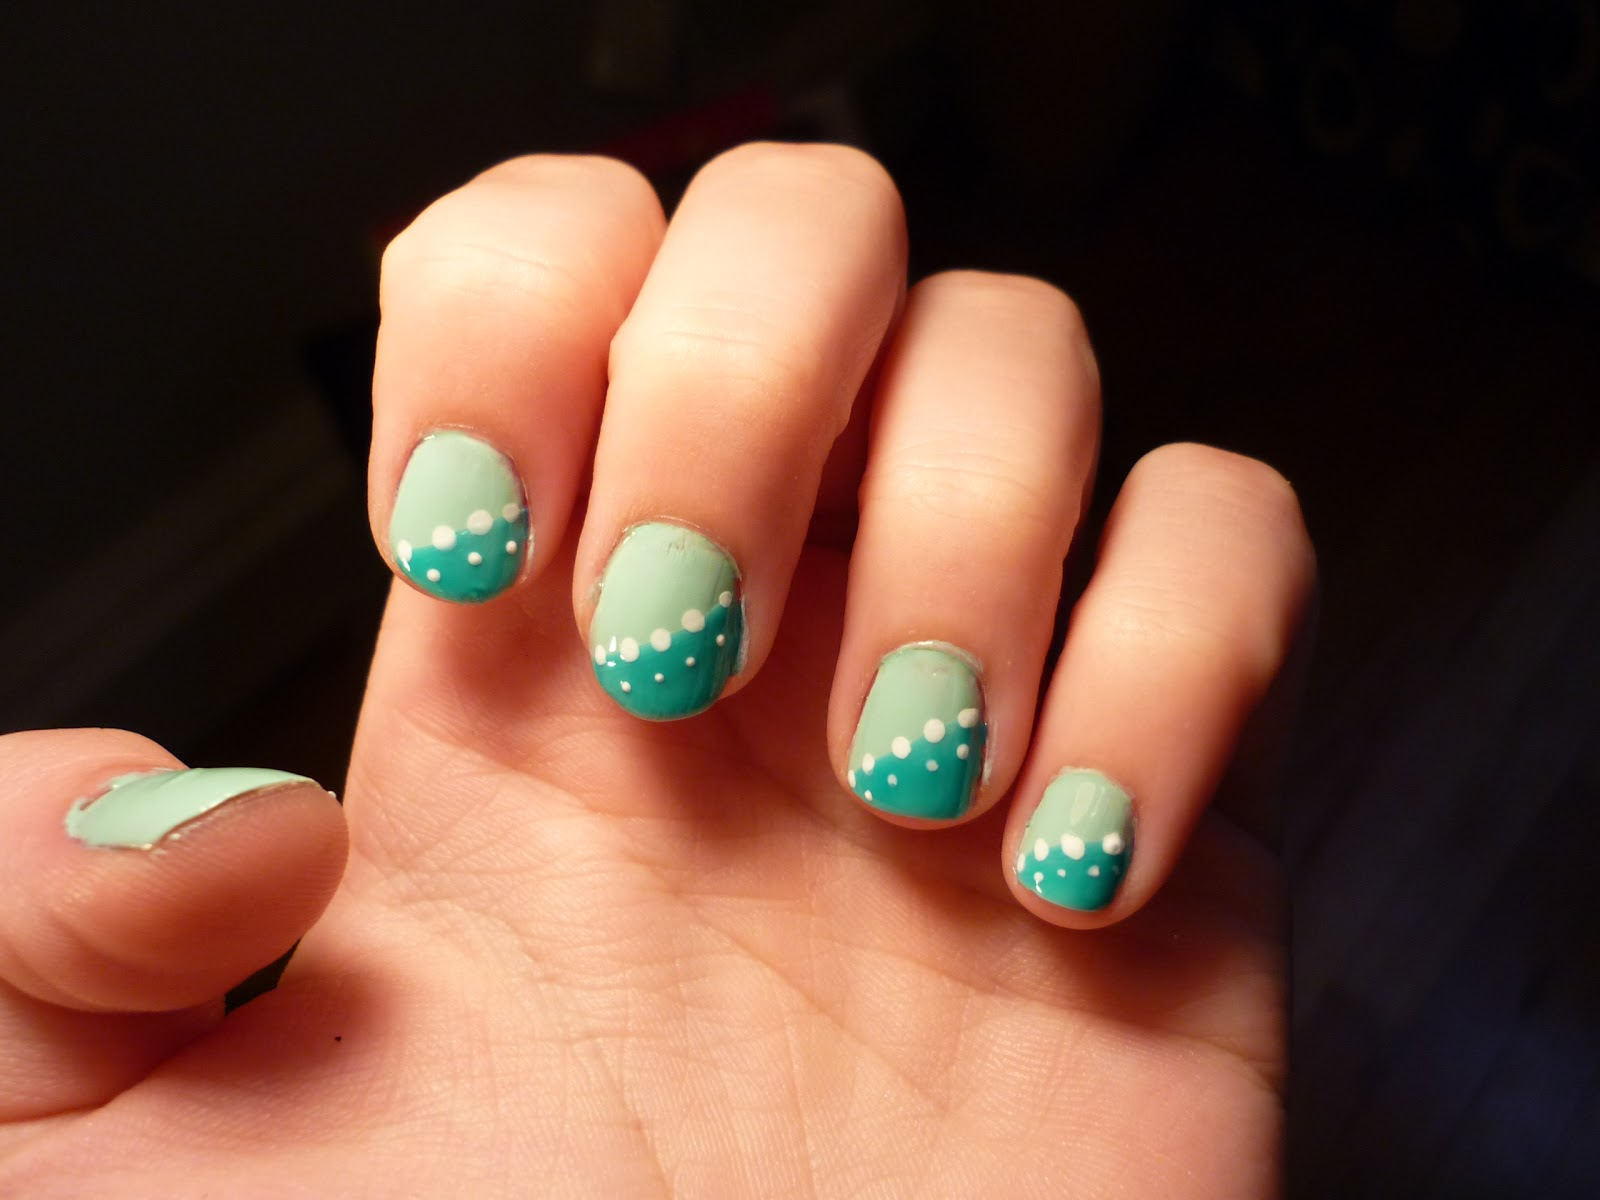 It 39 s a girl thing adorable quick and easy step by step nail design tutorial - Easy nail design ideas to do at home ...